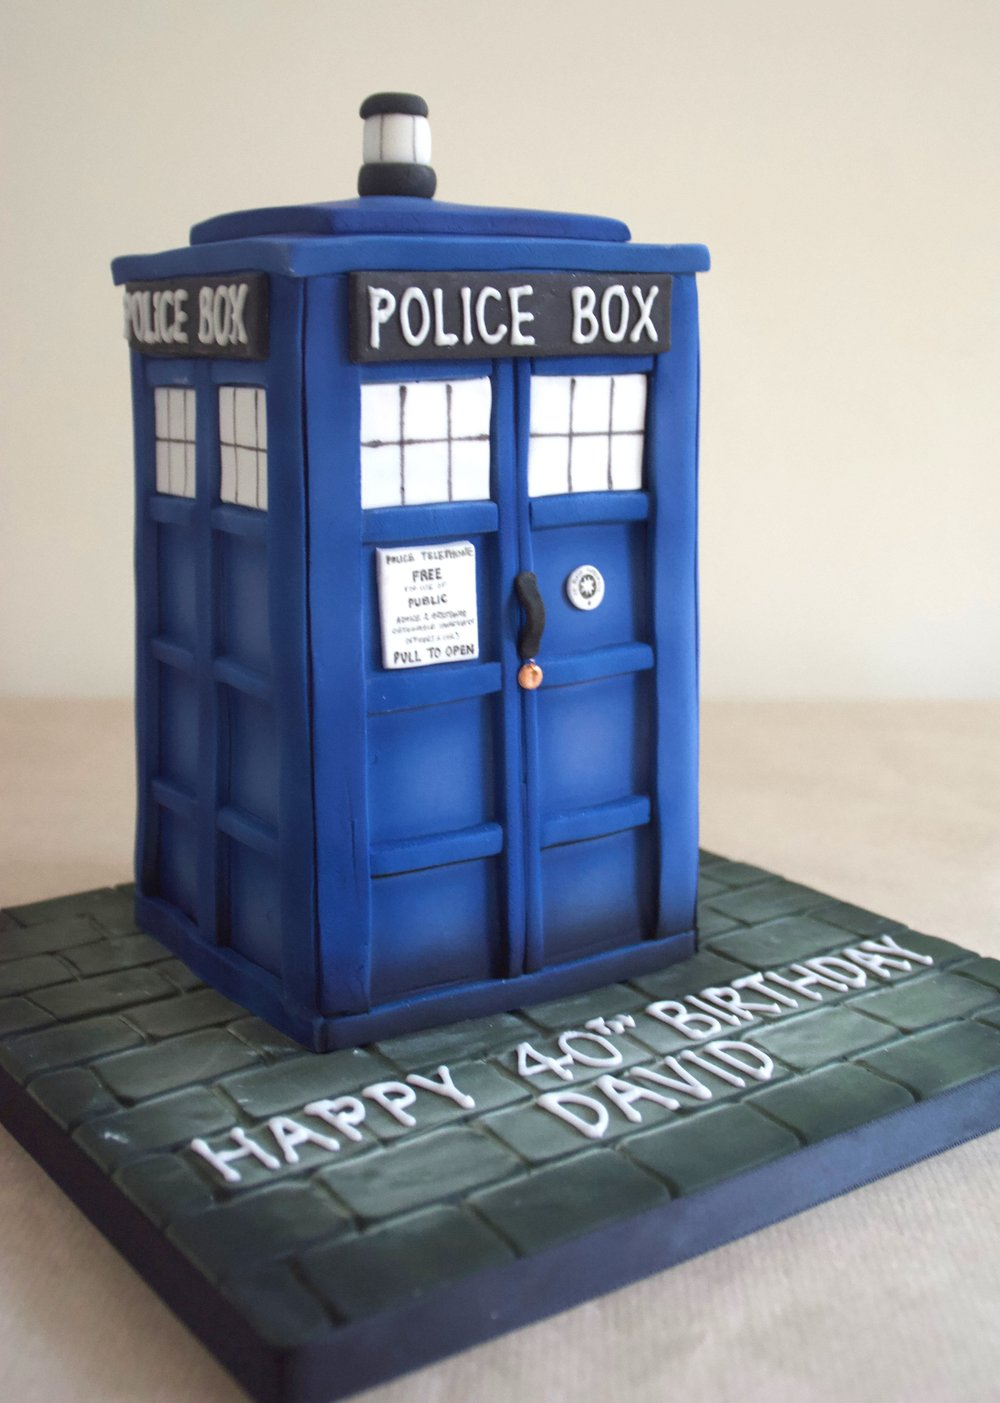 Dr Who's Tardis birthday cake